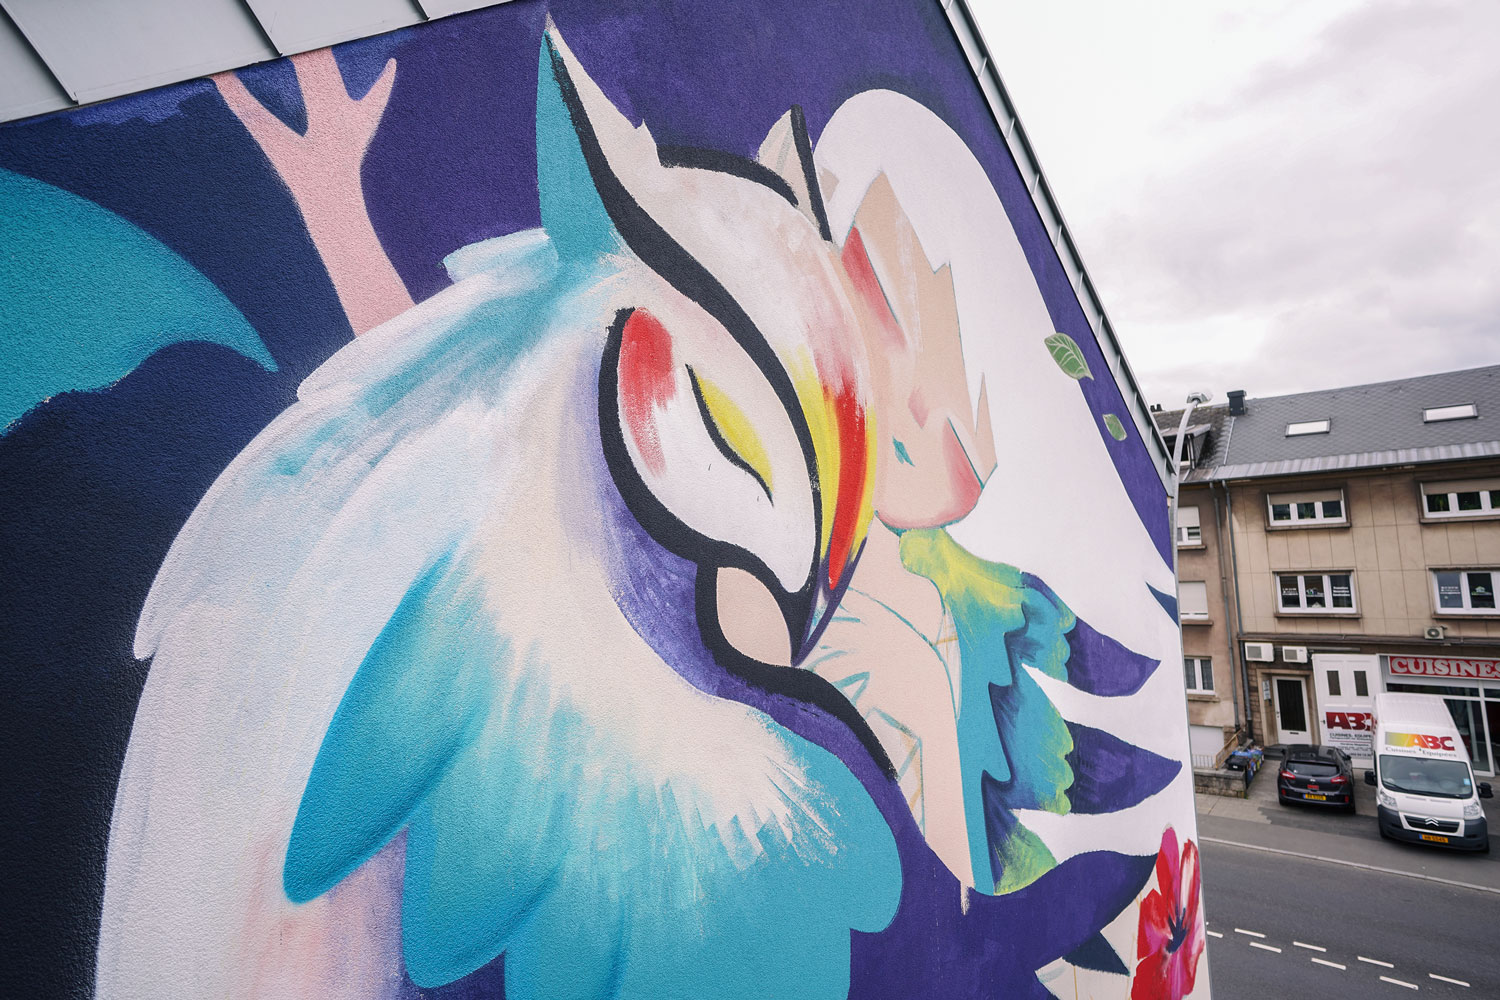 Julieta XLF large mural in Luxembourg Artes & contextos 03 kufas18